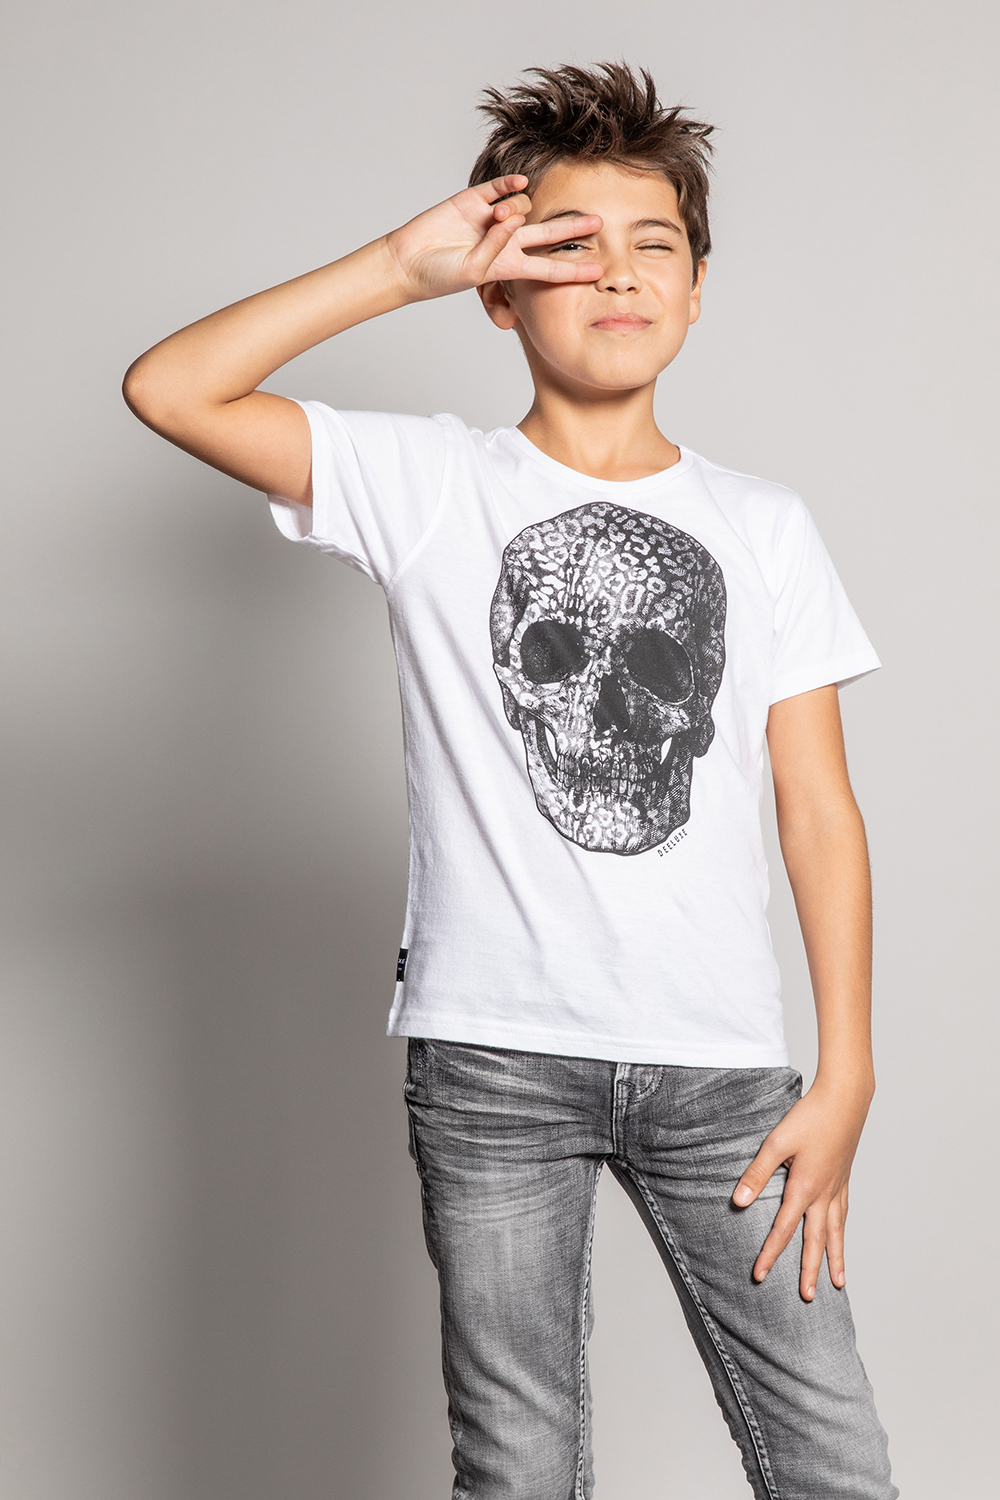 T-Shirt HADES - Couleur - White, Taille - 8